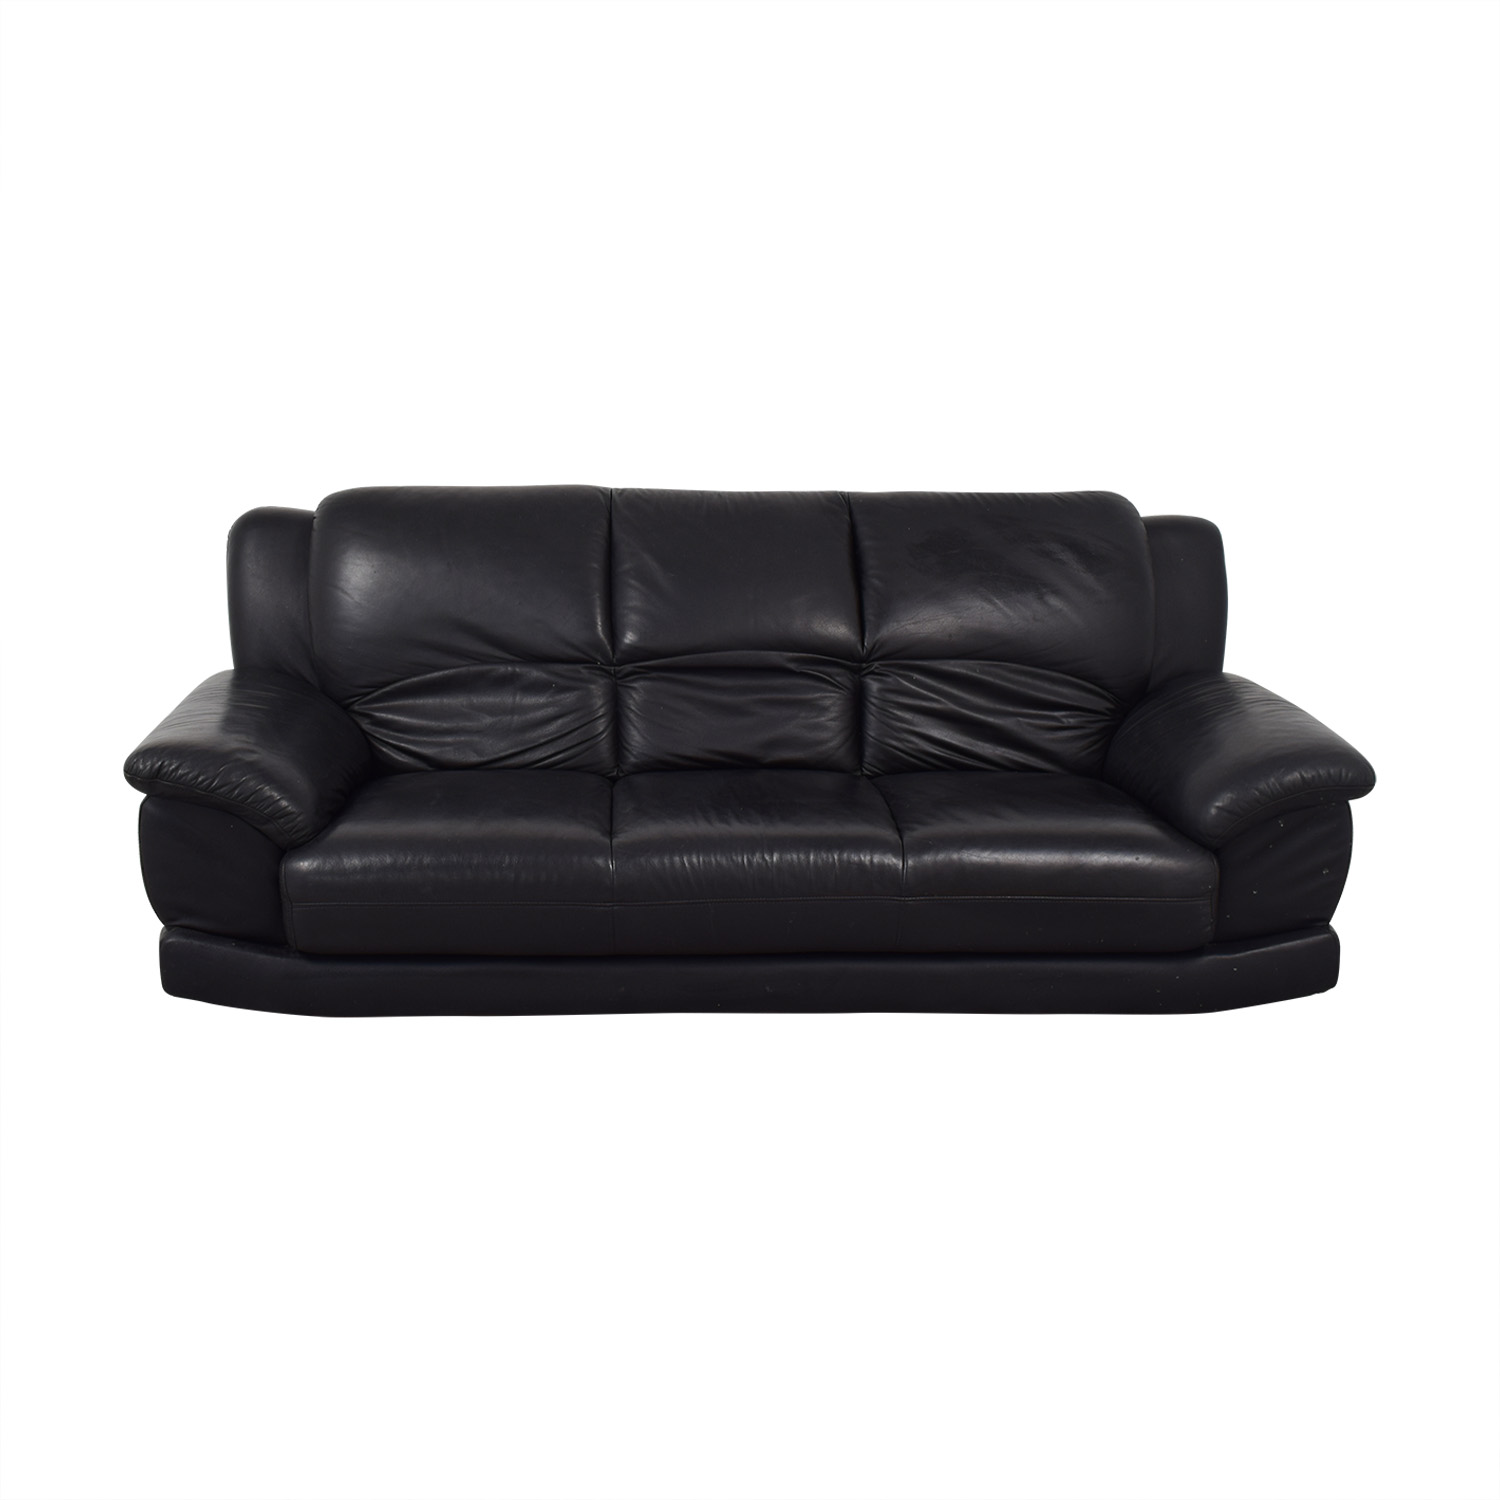 Ashley Furniture Ashley Furniture Leather Sofa coupon